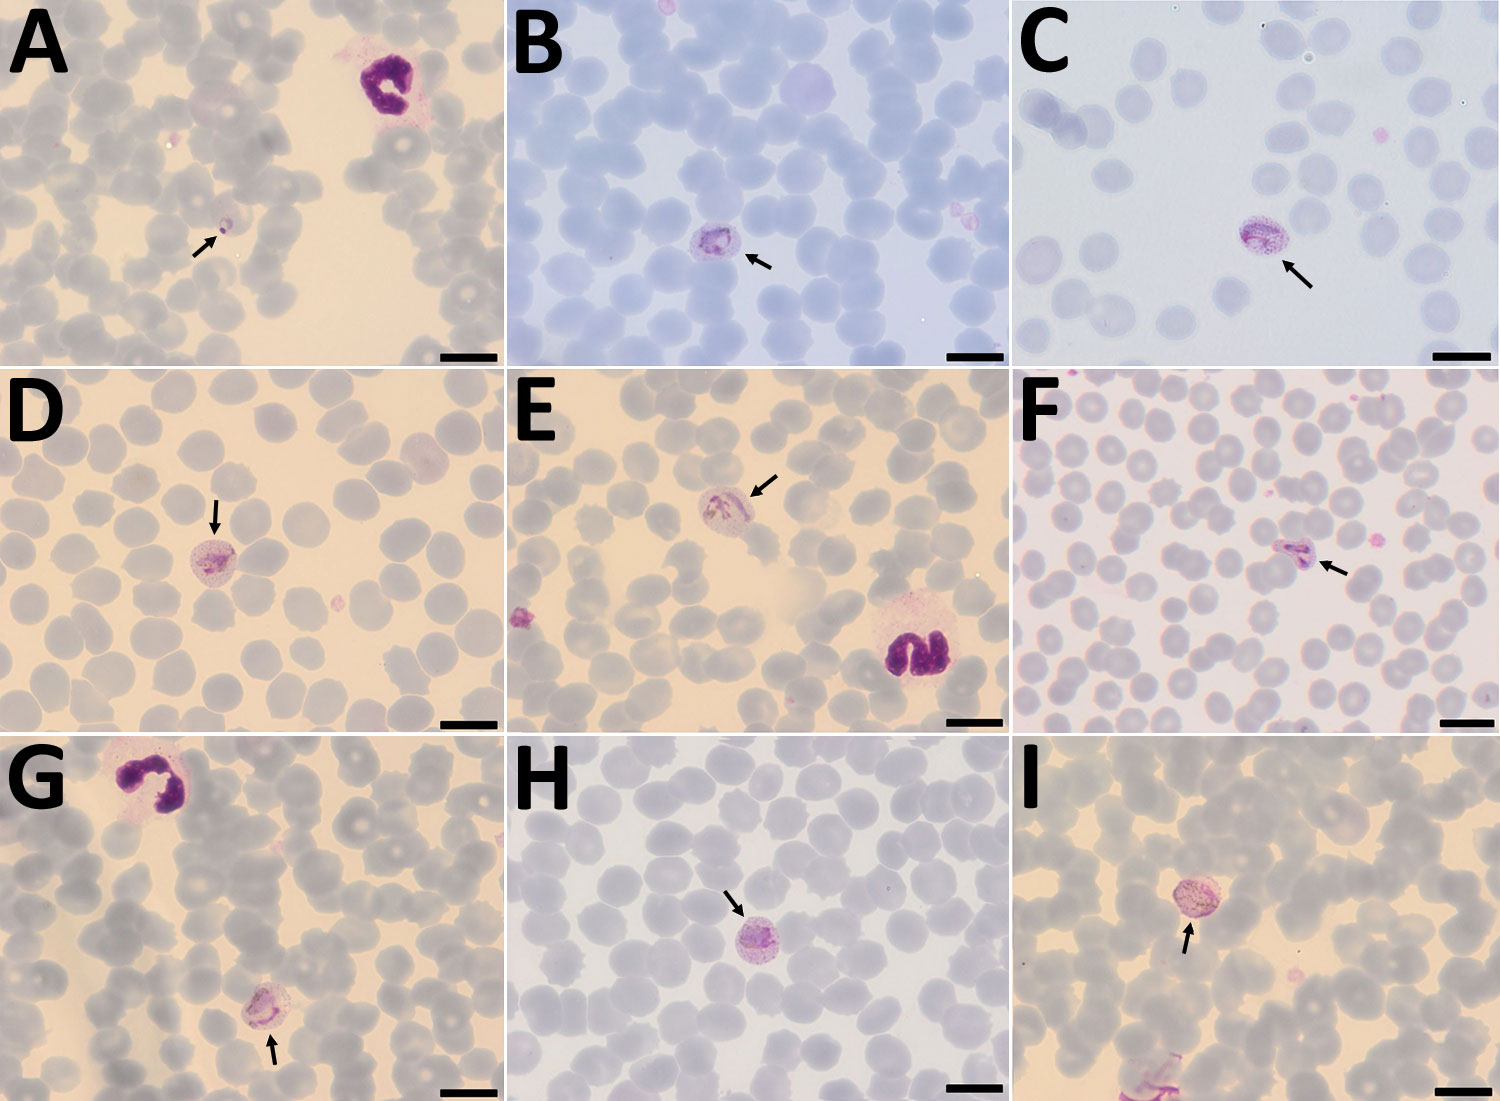 Plasmodium cynomolgi parasites in a Giemsa-stained thin smears of blood from a traveler returning from Southeast Asia to Denmark. Overall, few parasites were visible in the thin film, and no schizonts were visible at all. A) Young trophozoite. The cytoplasm is ring shaped, and the nucleus is spherical. The erythrocyte is not enlarged, and neither Schüffner's dots nor pigment are visible. B) Growing trophozoite. The young parasite is ring shaped and takes up more than half of the diameter of the